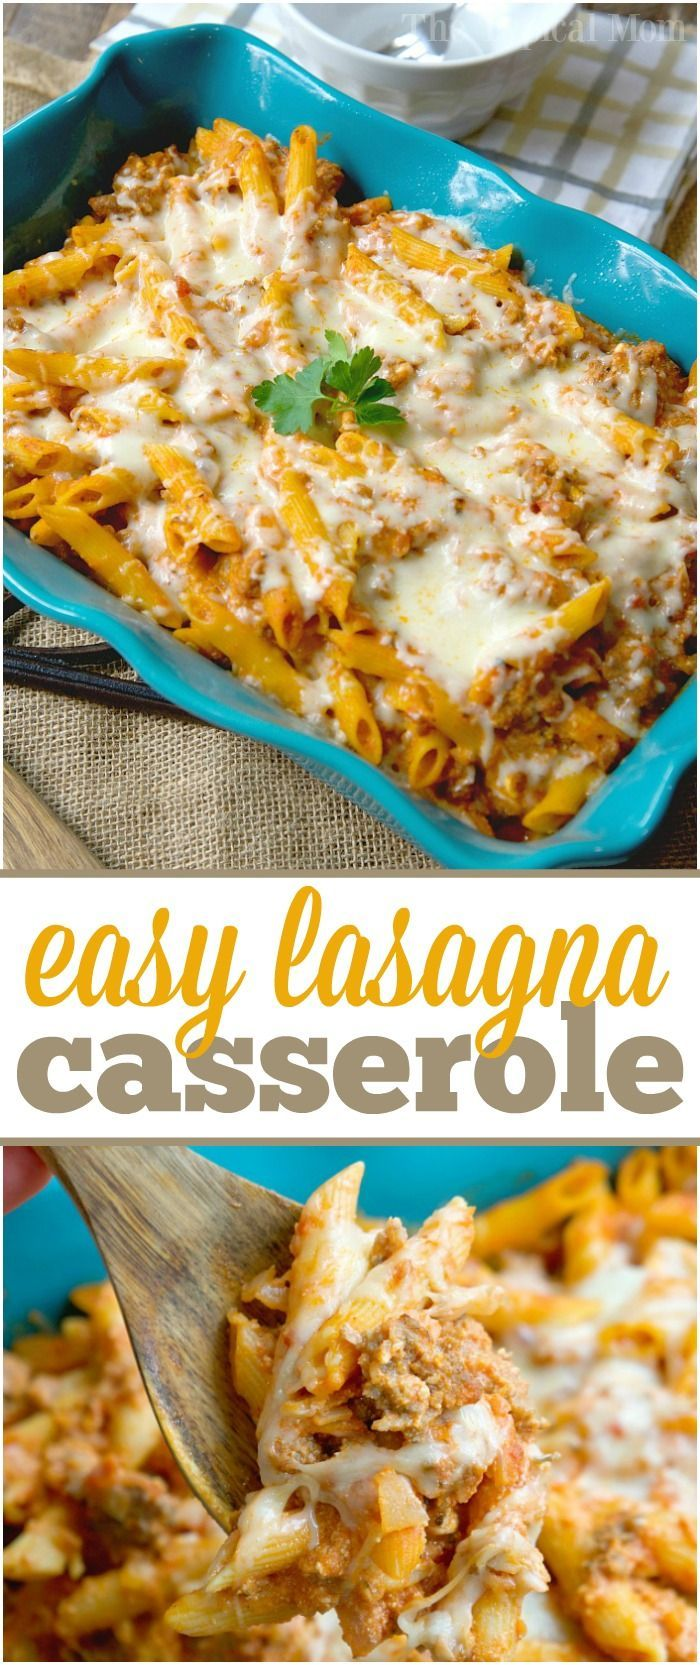 Super easy lasagna casserole recipe that is my kids' favorite meal! No big messy noodles to cut, just throw it all together and enjoy all the same flavors together. via @thetypicalmom